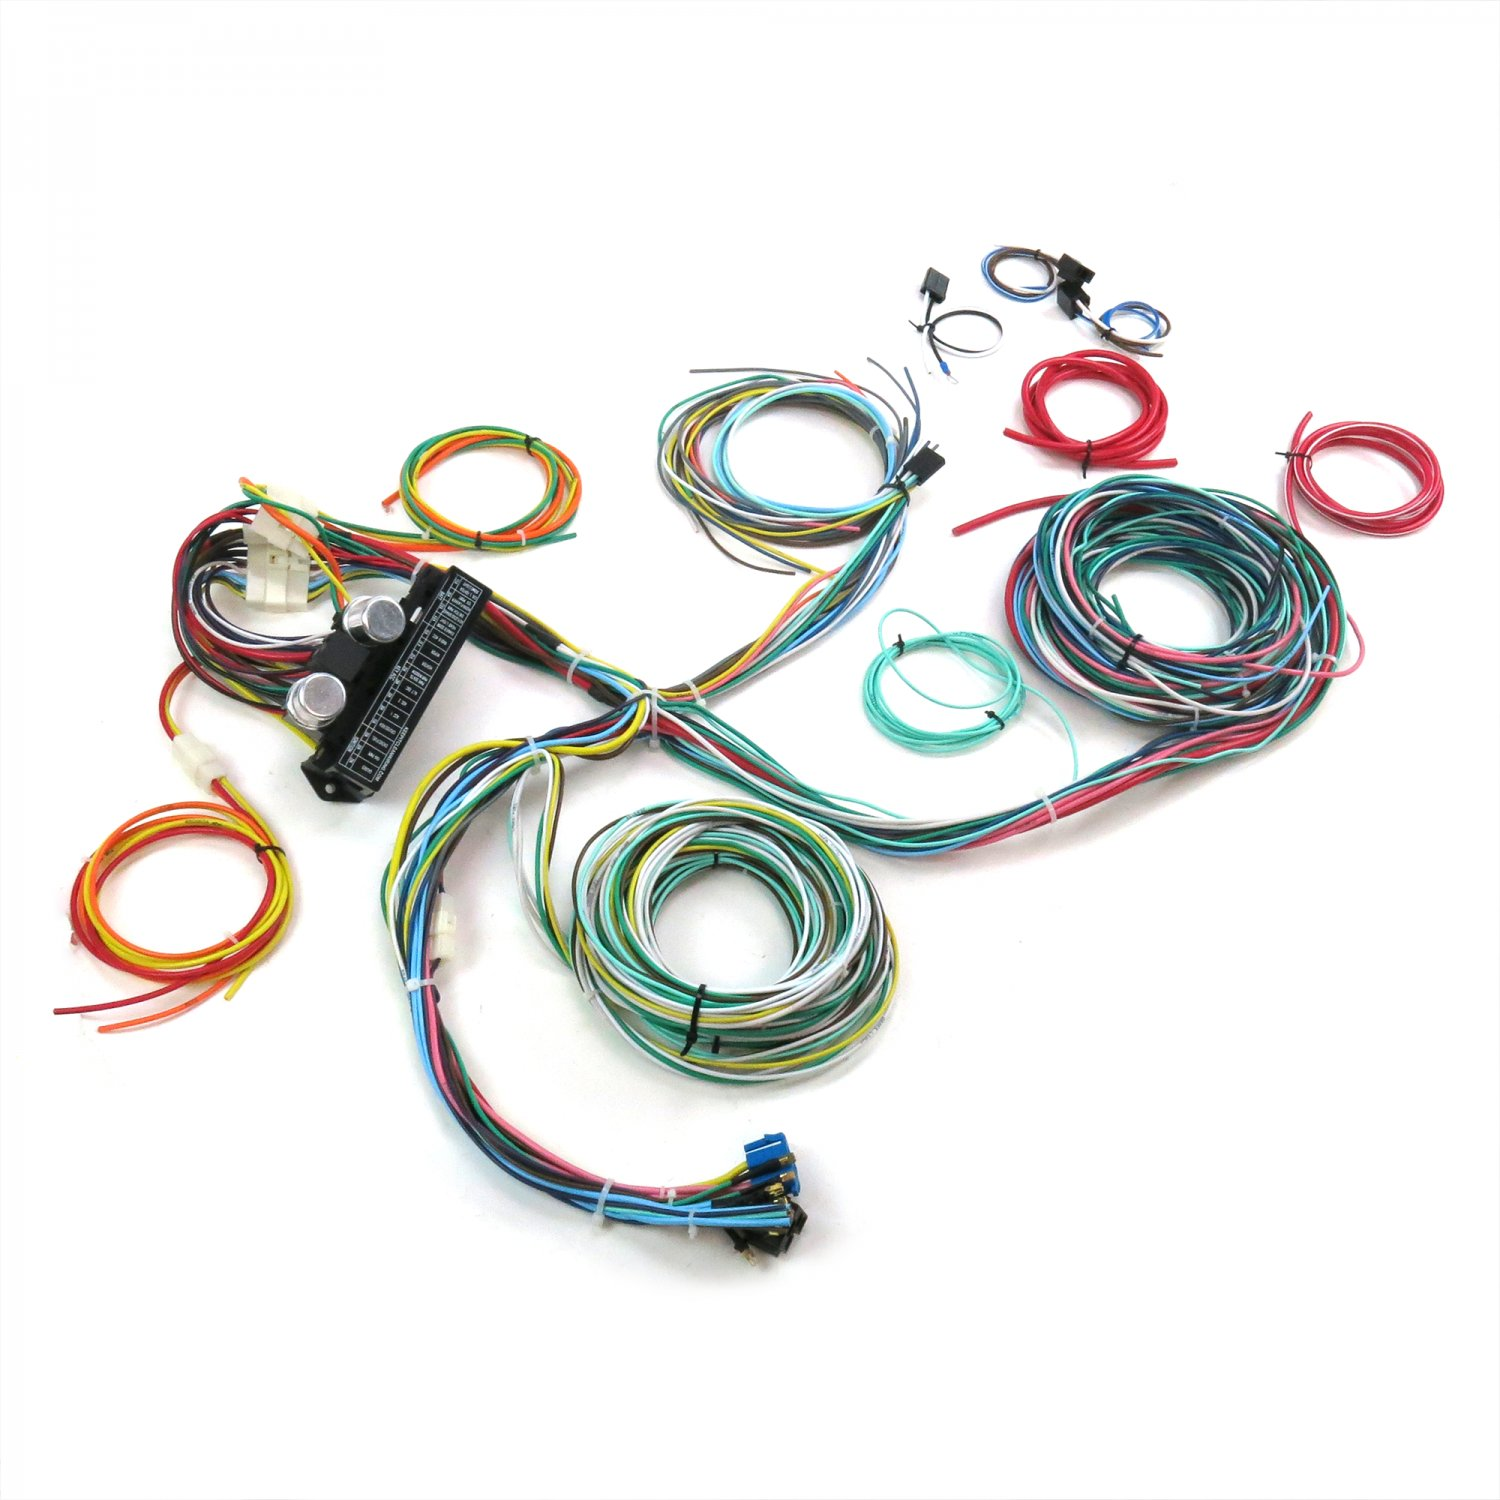 auto wire harness re wiring kit for any 67 72 chevy truck Ford Wiring Harness wiring harness kits supercheap auto